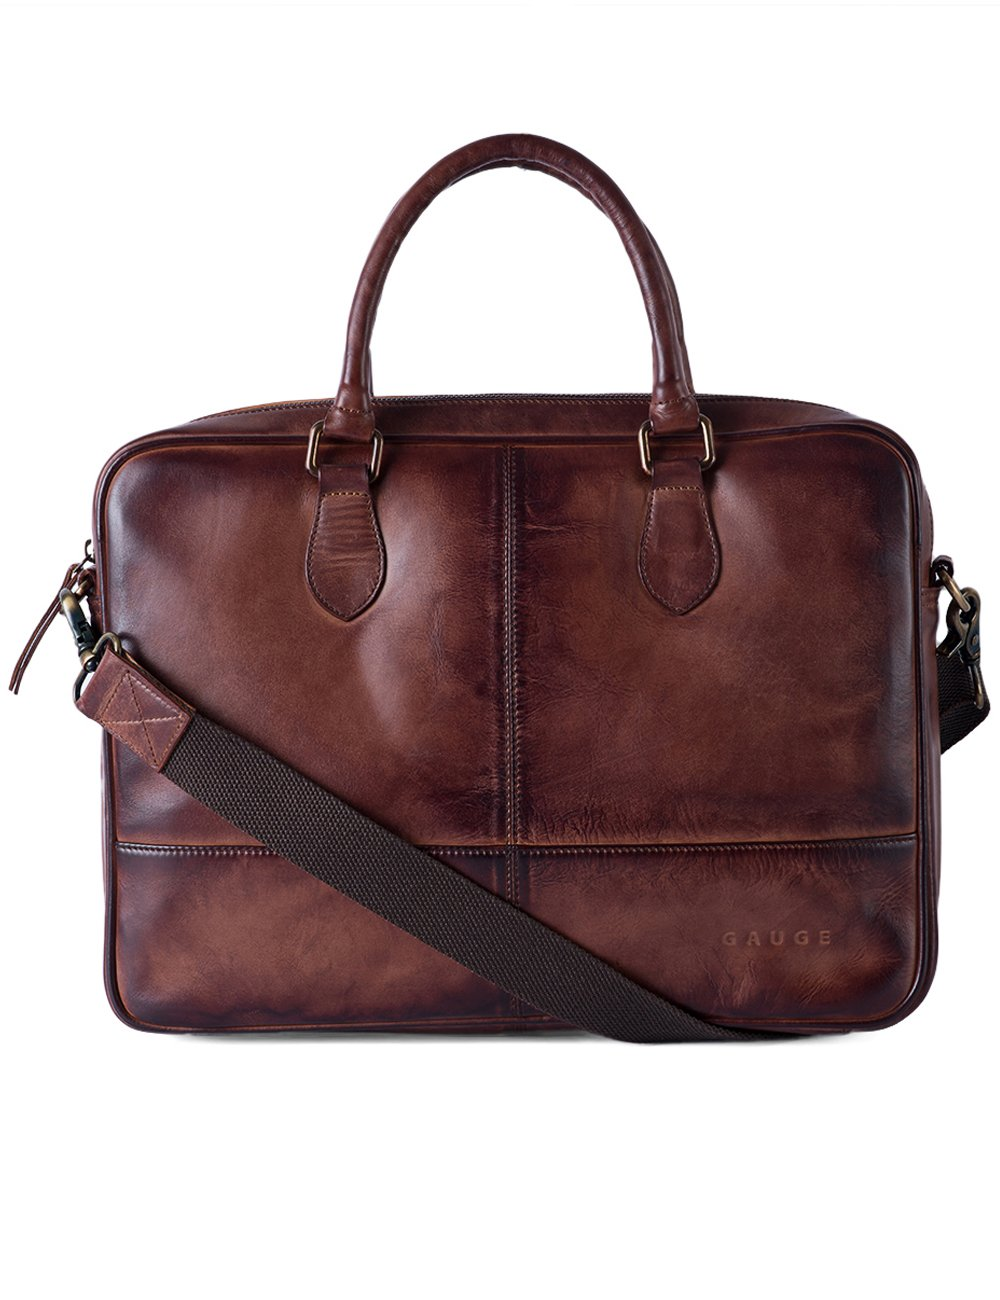 Gauge 15 Inch Hand Padded Leather Laptop Bag Messenger Bag Office Briefcase College Bag Satchel for Men (Brown)